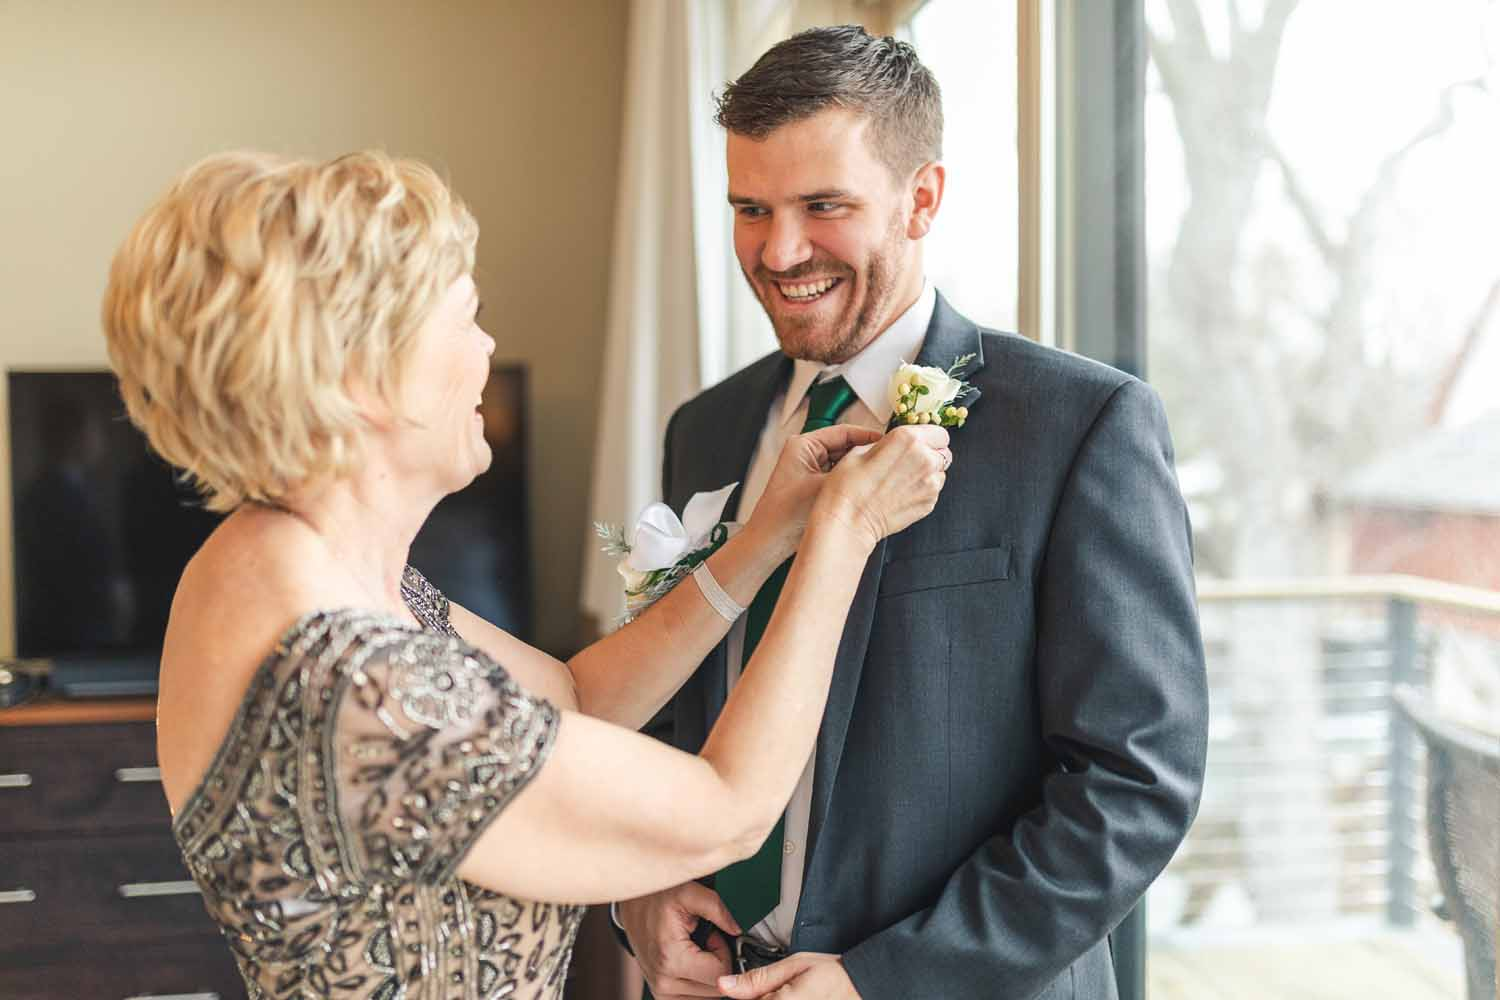 Mother of the groom places boutonniere on lapel